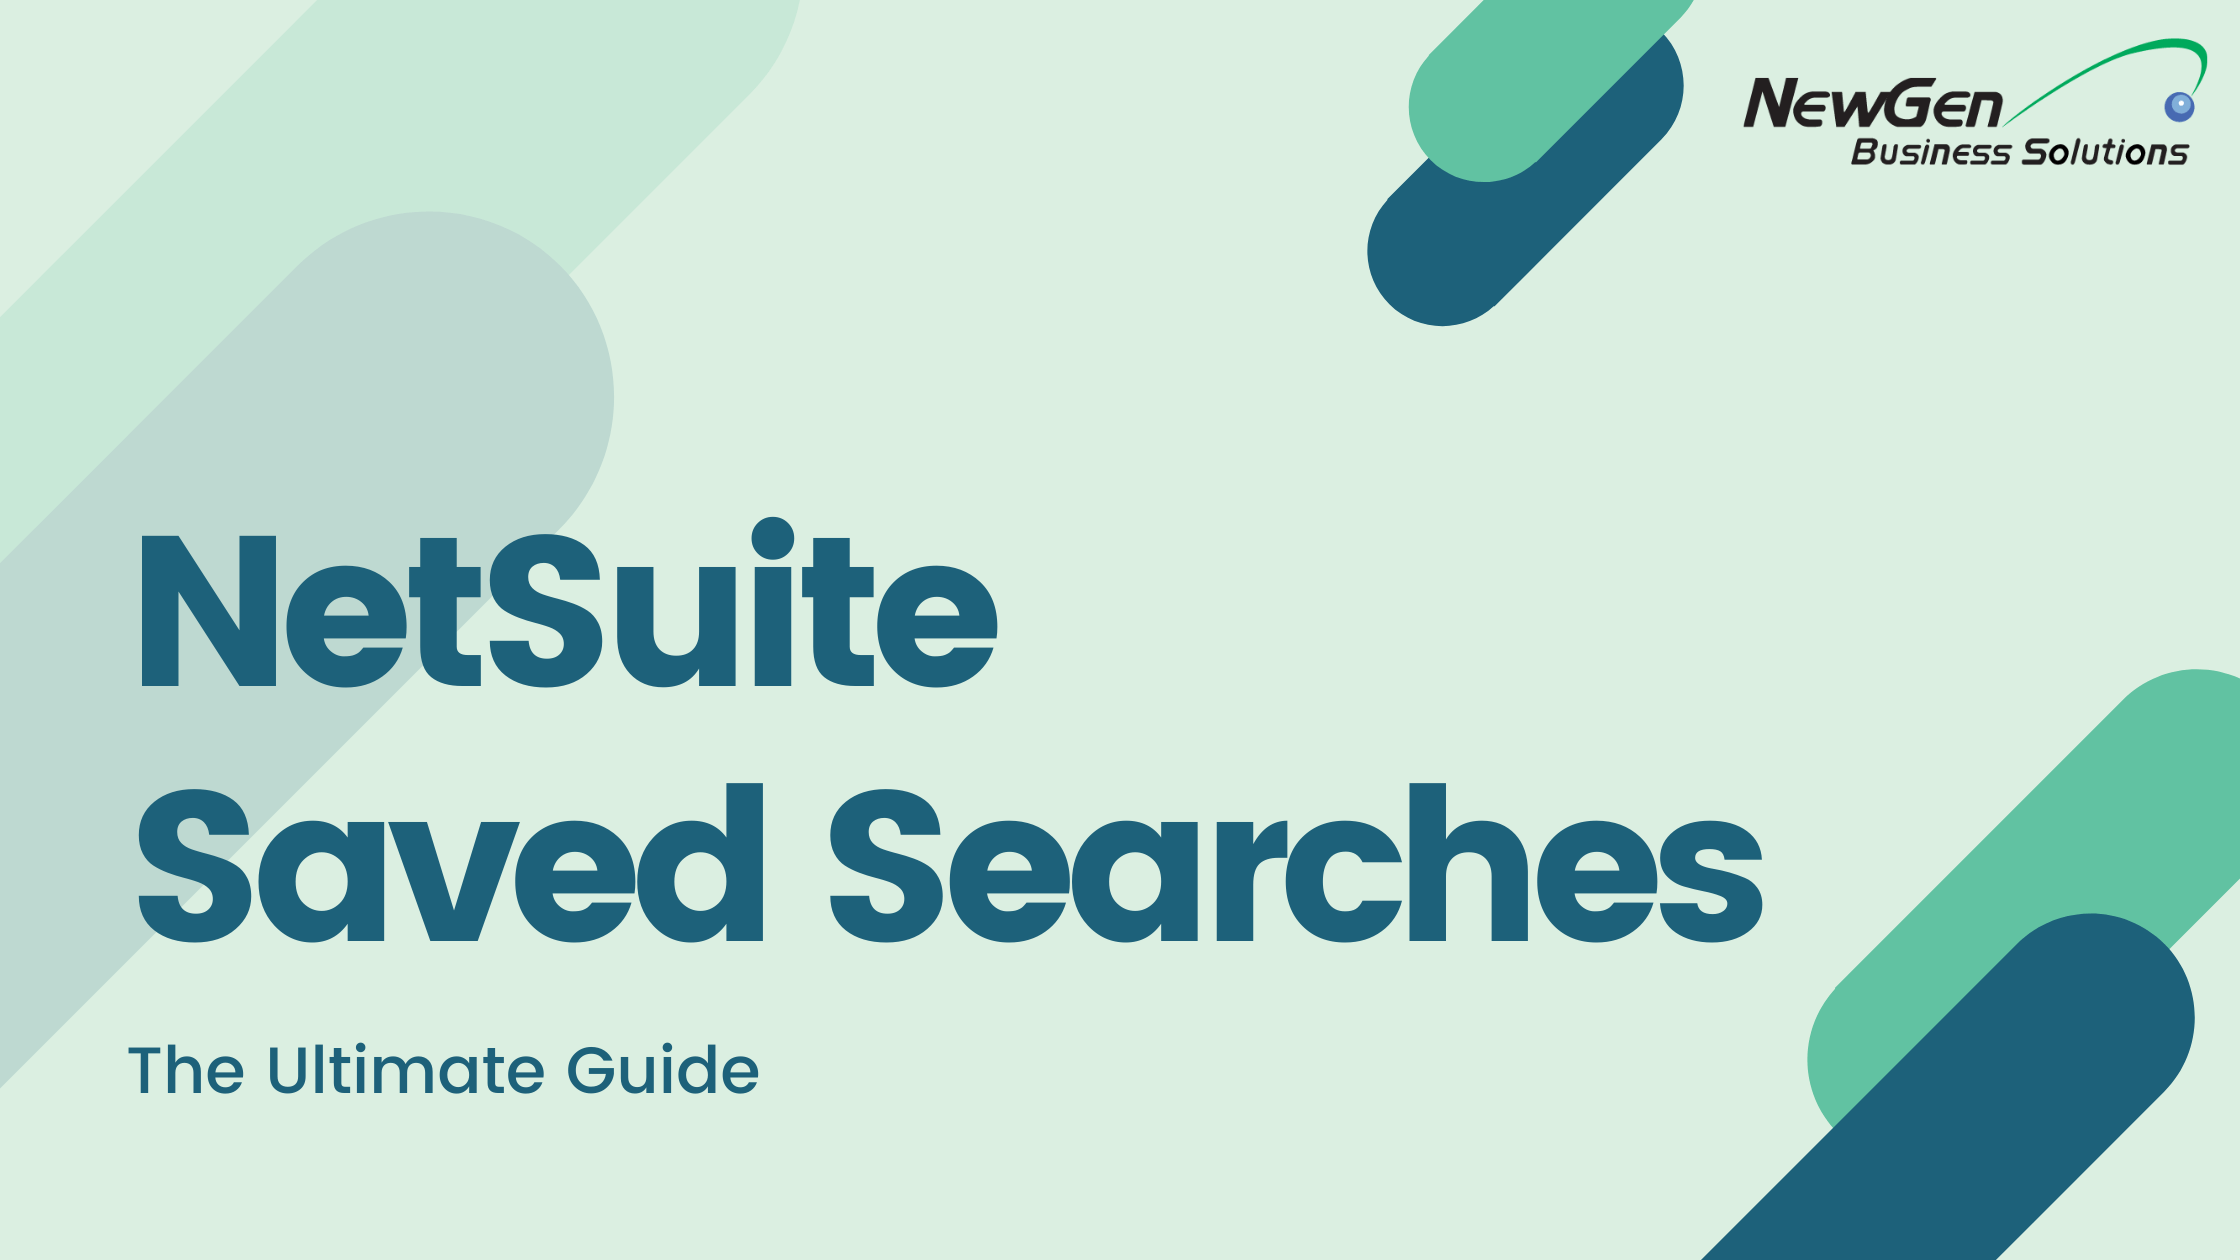 NetSuite Saved Search guide